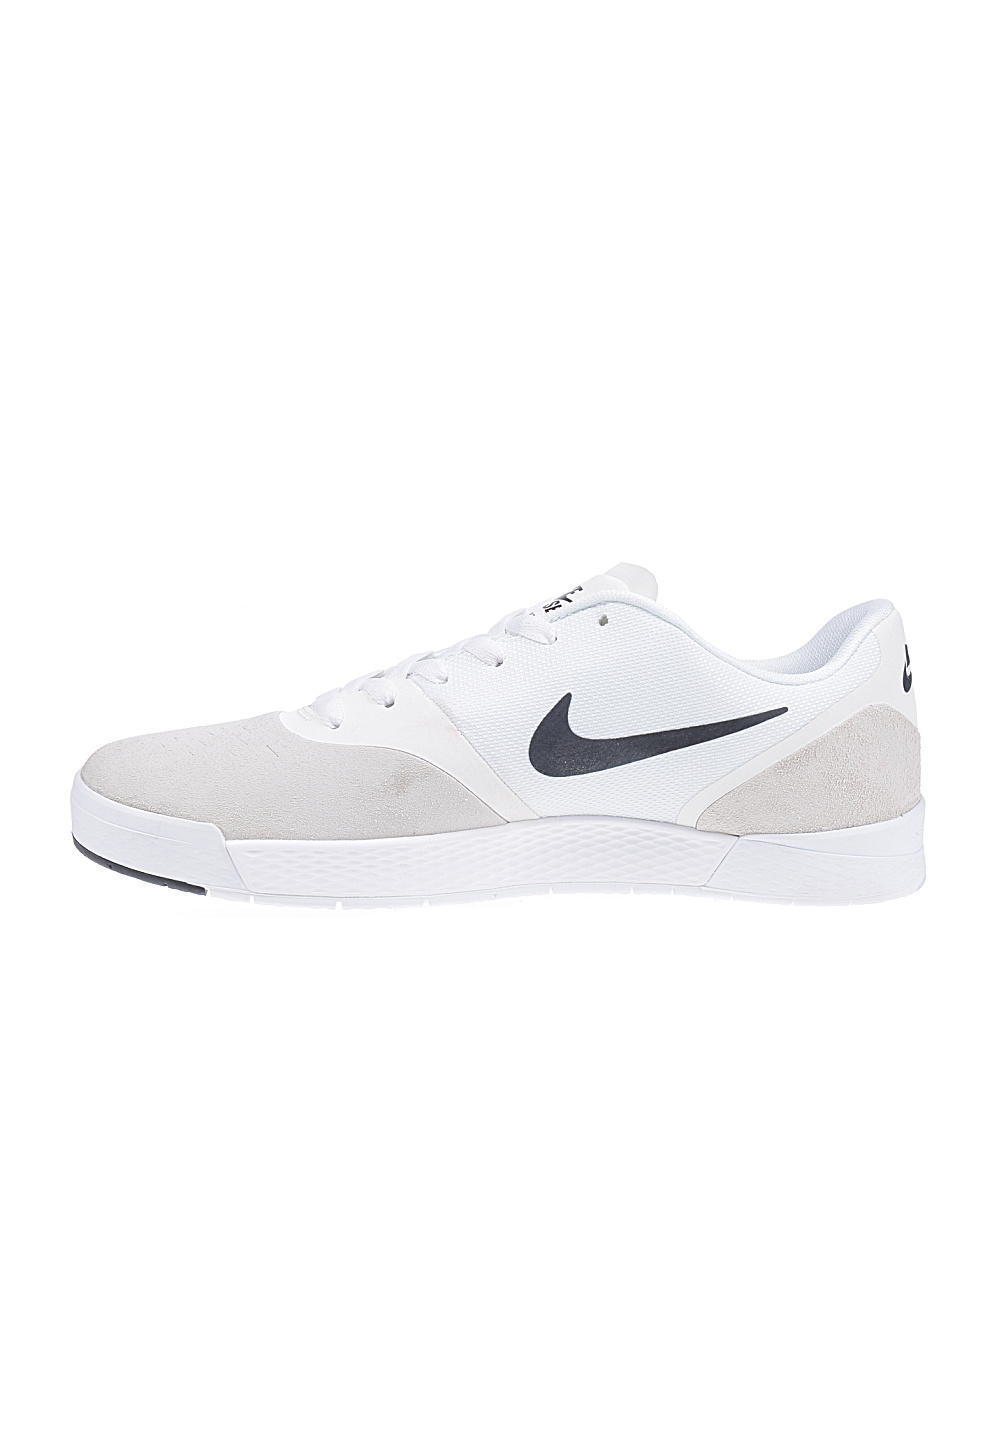 cheap for discount 250e7 c4a4d Next. This product is currently out of stock. NIKE SB. Paul Rodriguez 9 CS  - Sneakers for Men. €84.95